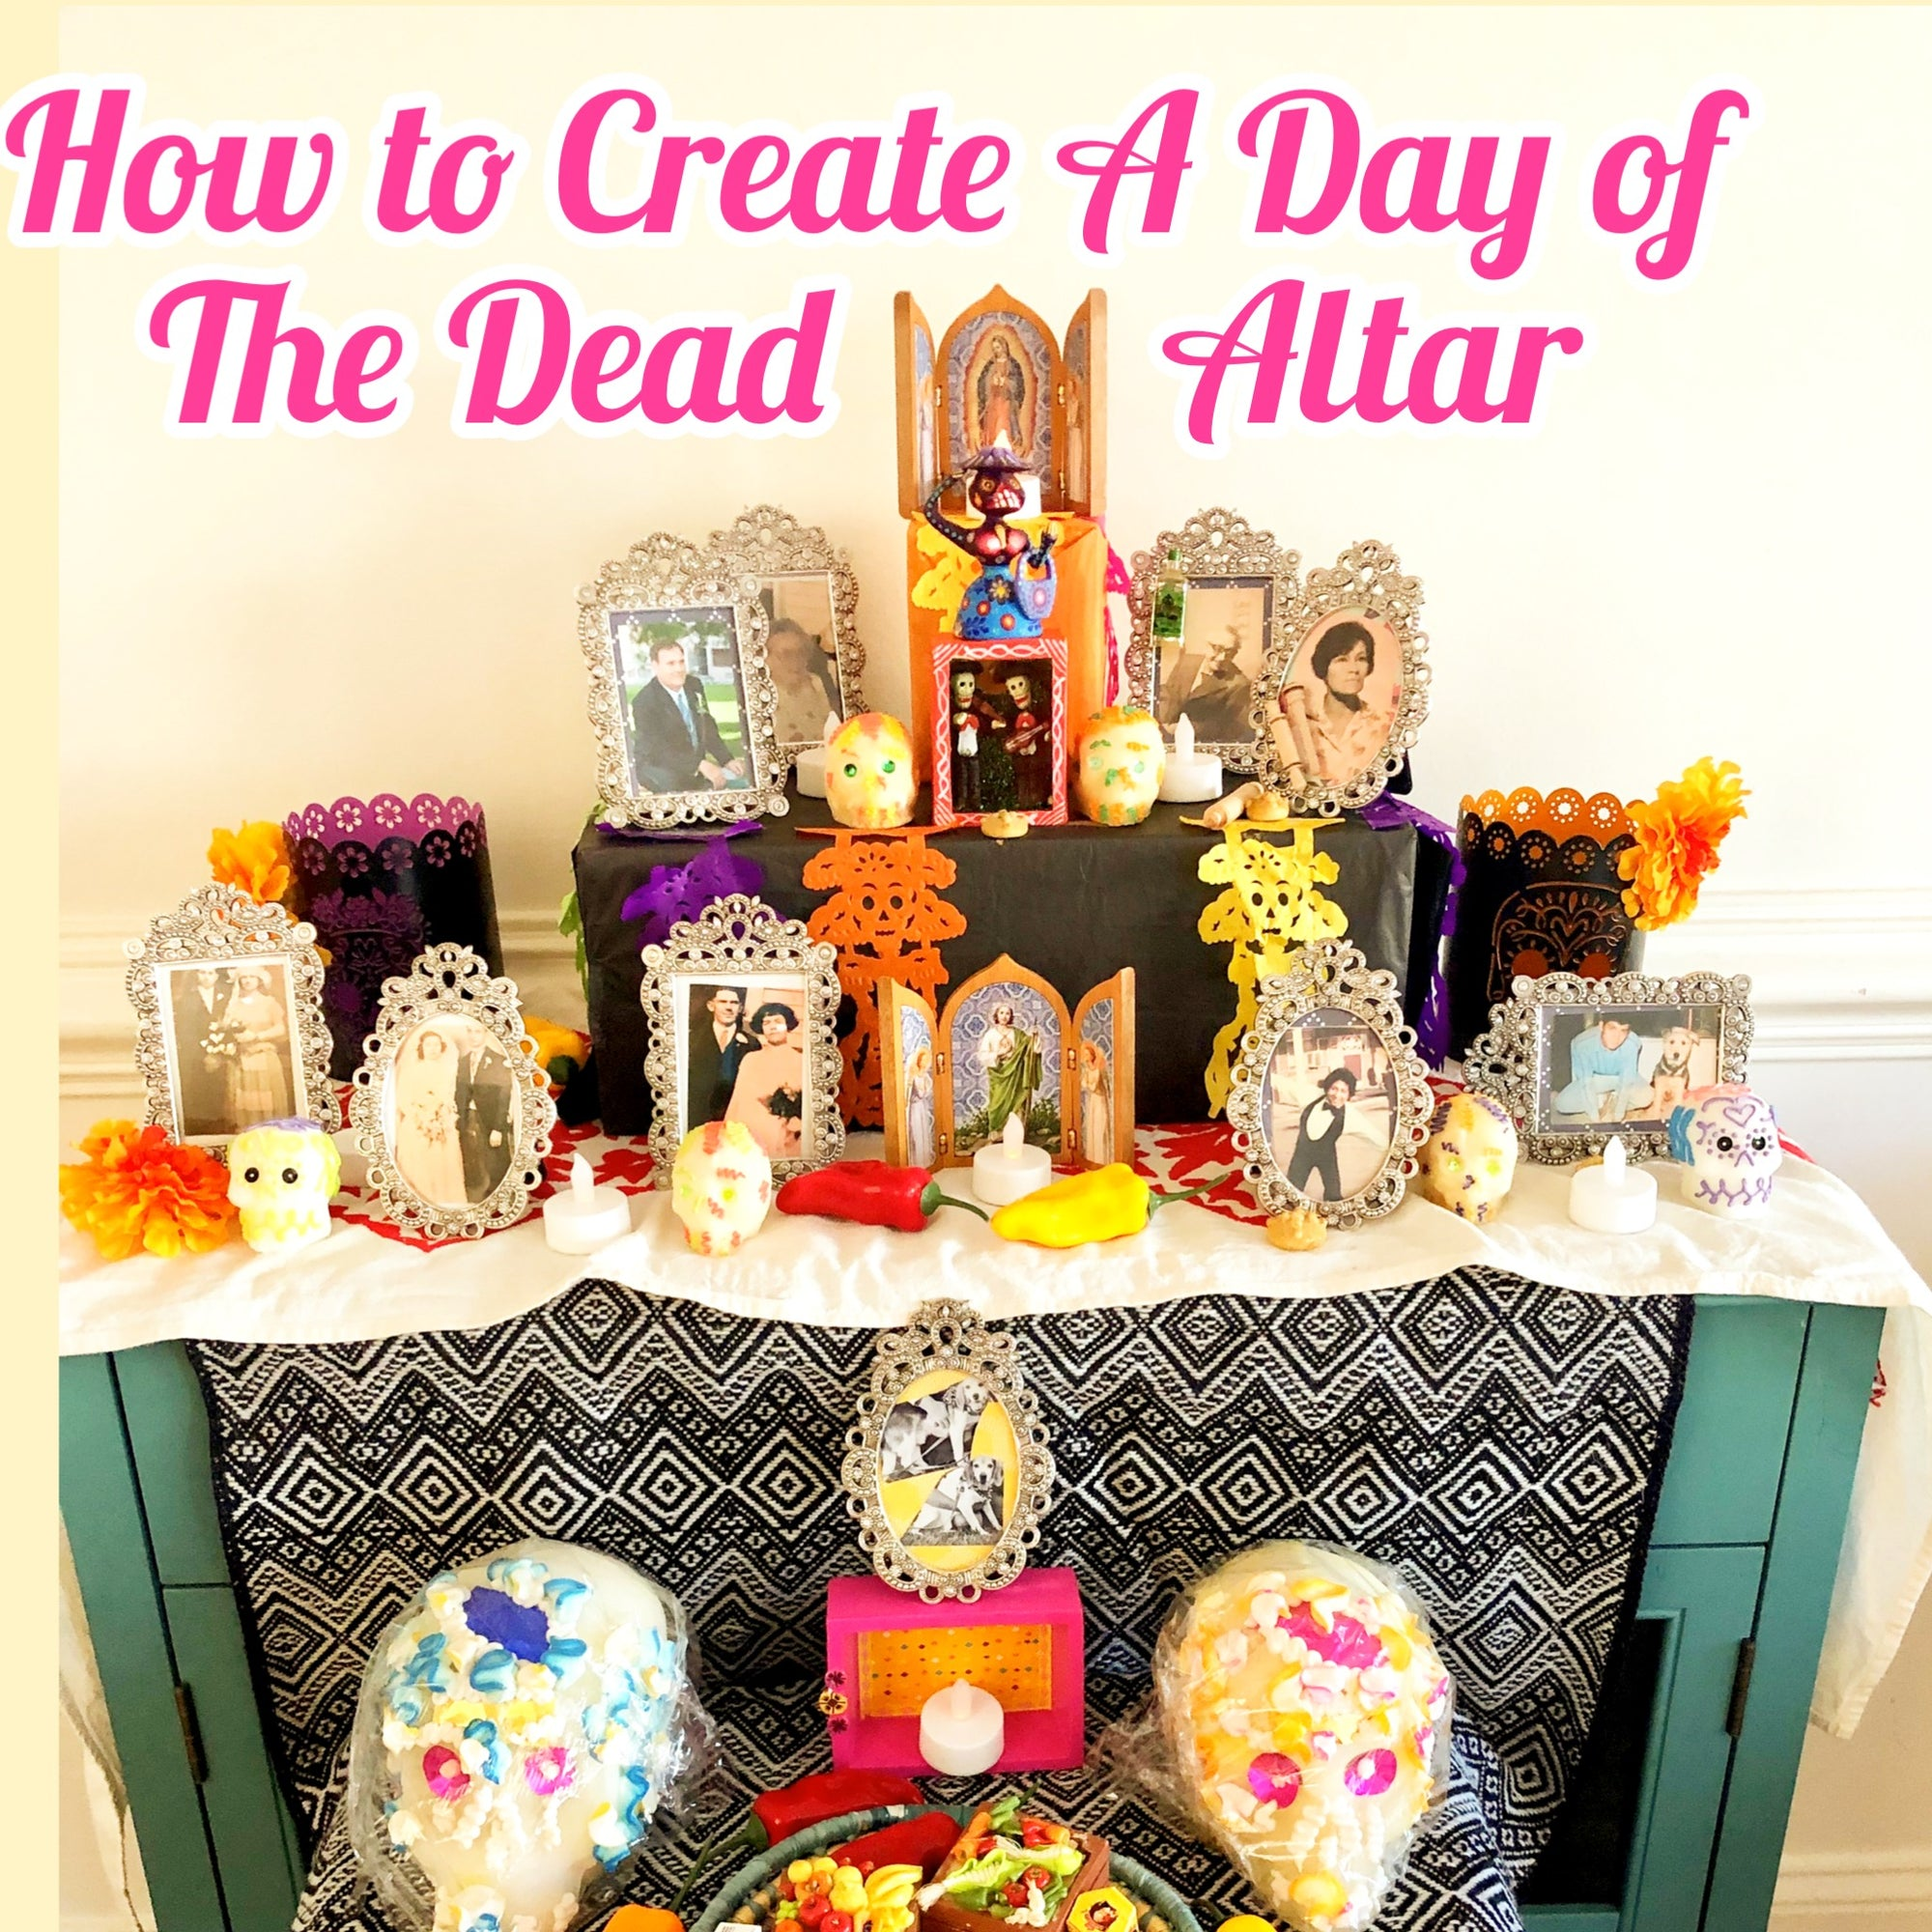 How to create a Day of the Dead Altar or Día de Muertos Ofrenda